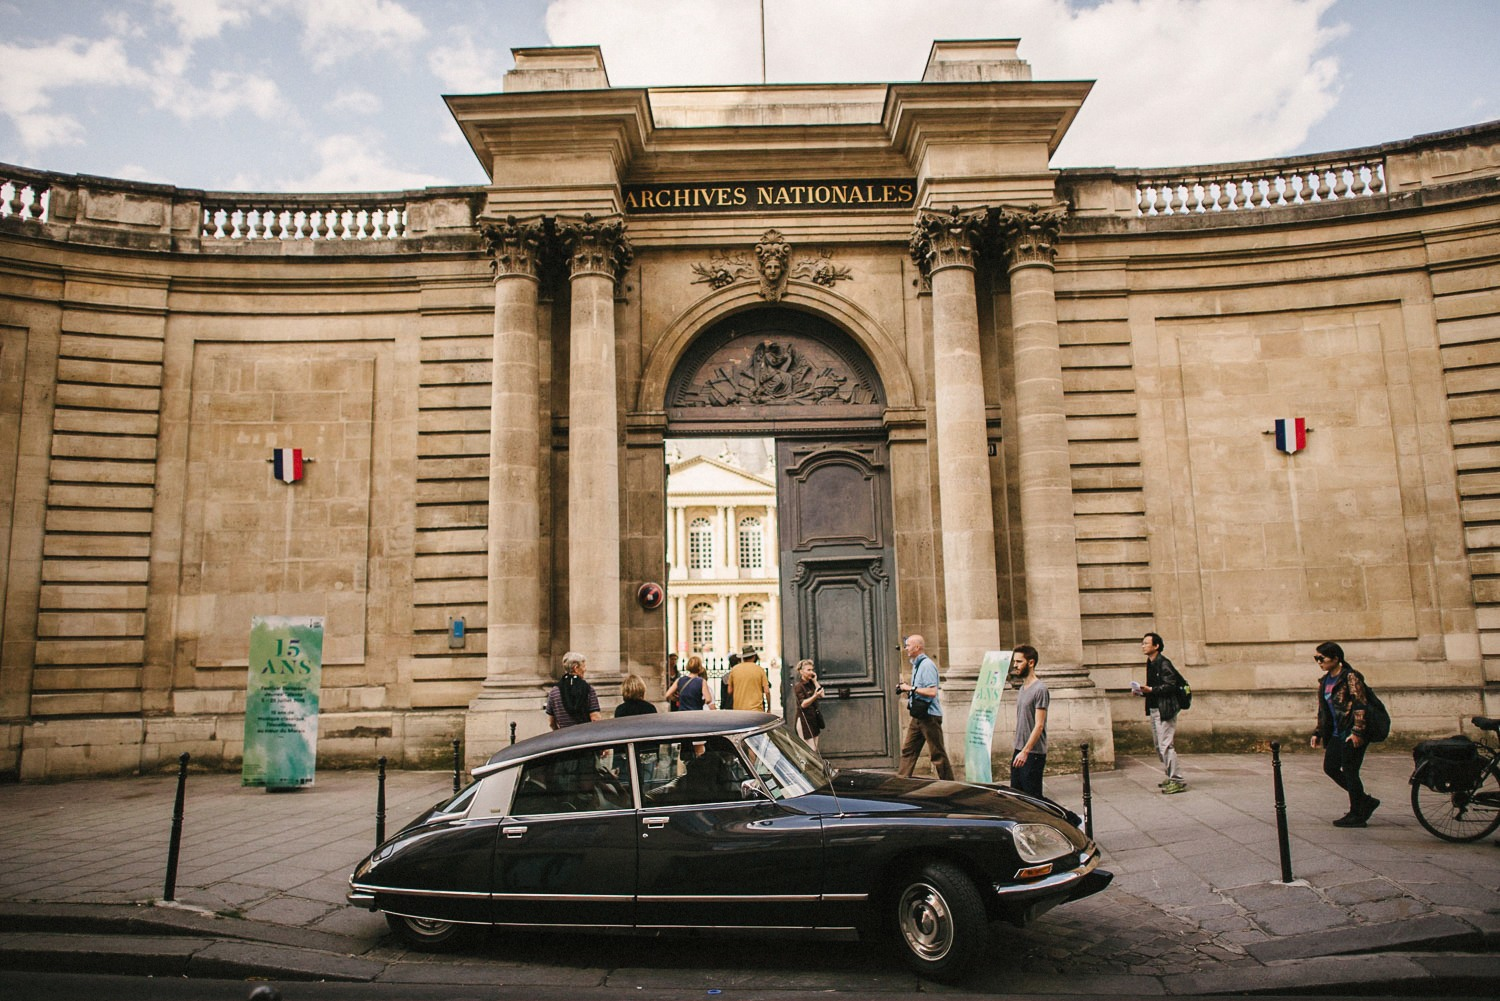 archives nationales wedding